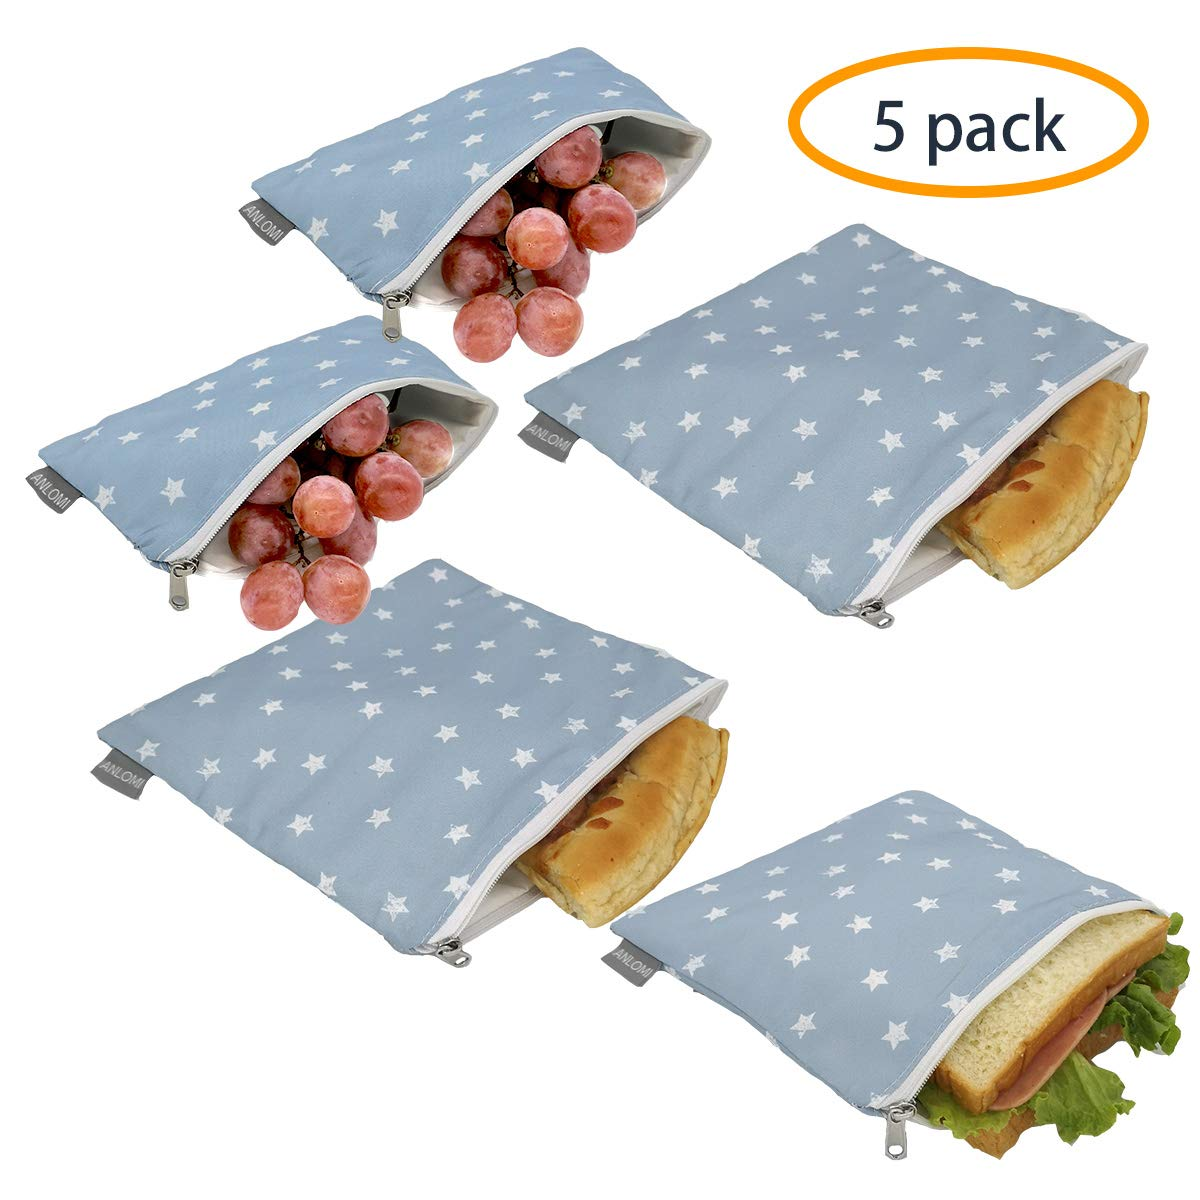 Reusable Sandwich Bags Snack Bags - Set of 5 Pack, Dual Layer Lunch Bags with Zipper, Dishwasher Safe, Eco Friendly Food Wraps, BPA-Free. (Star)